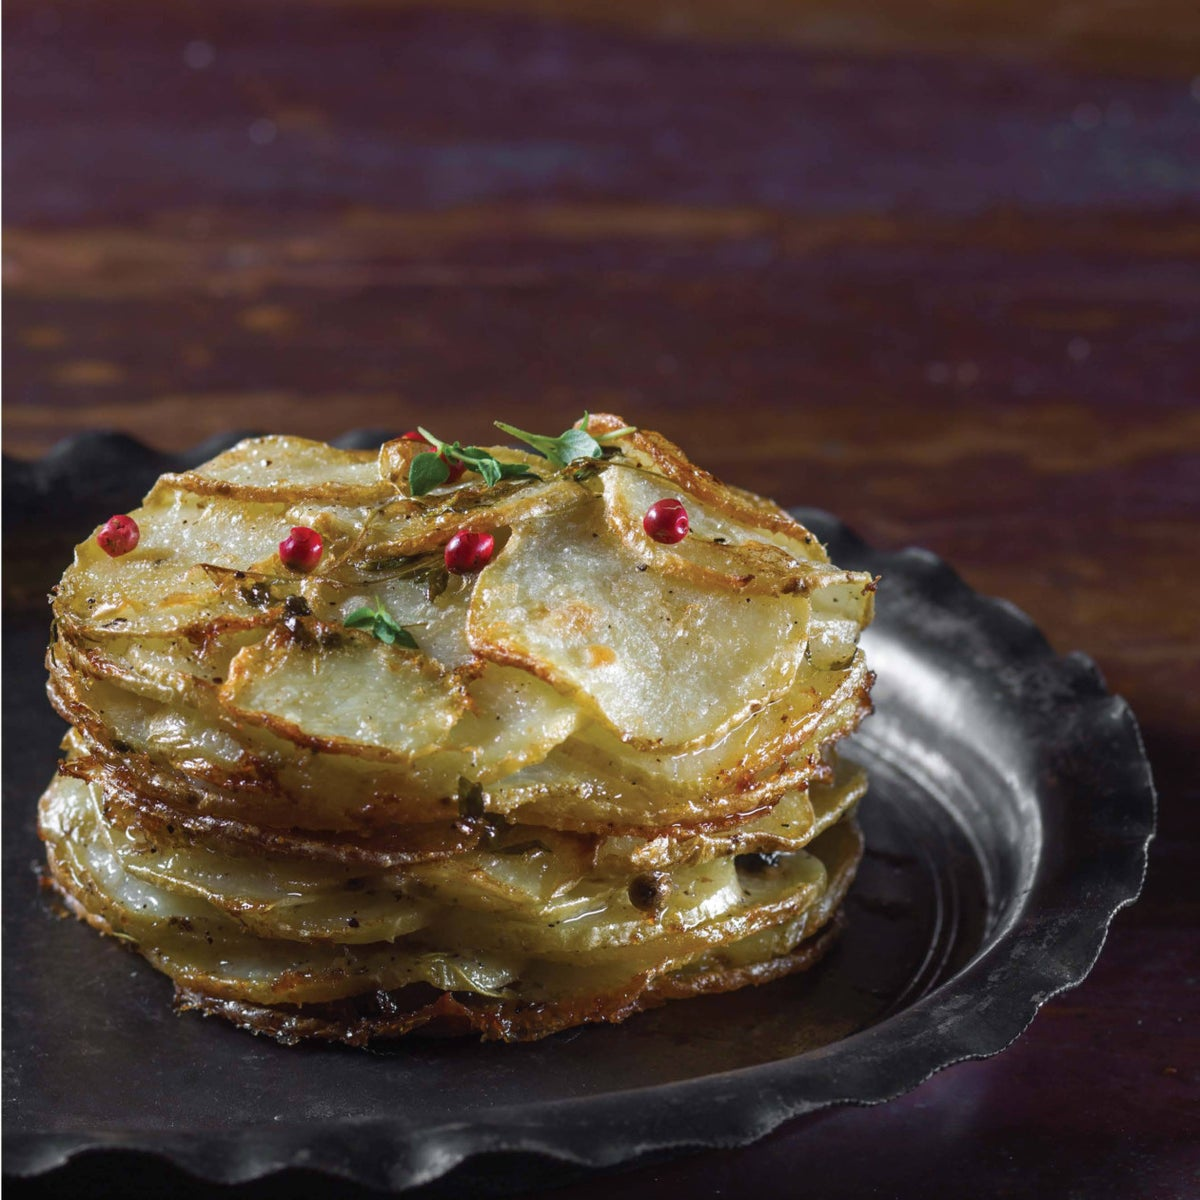 Potato and onion gratin. Rich and filling.